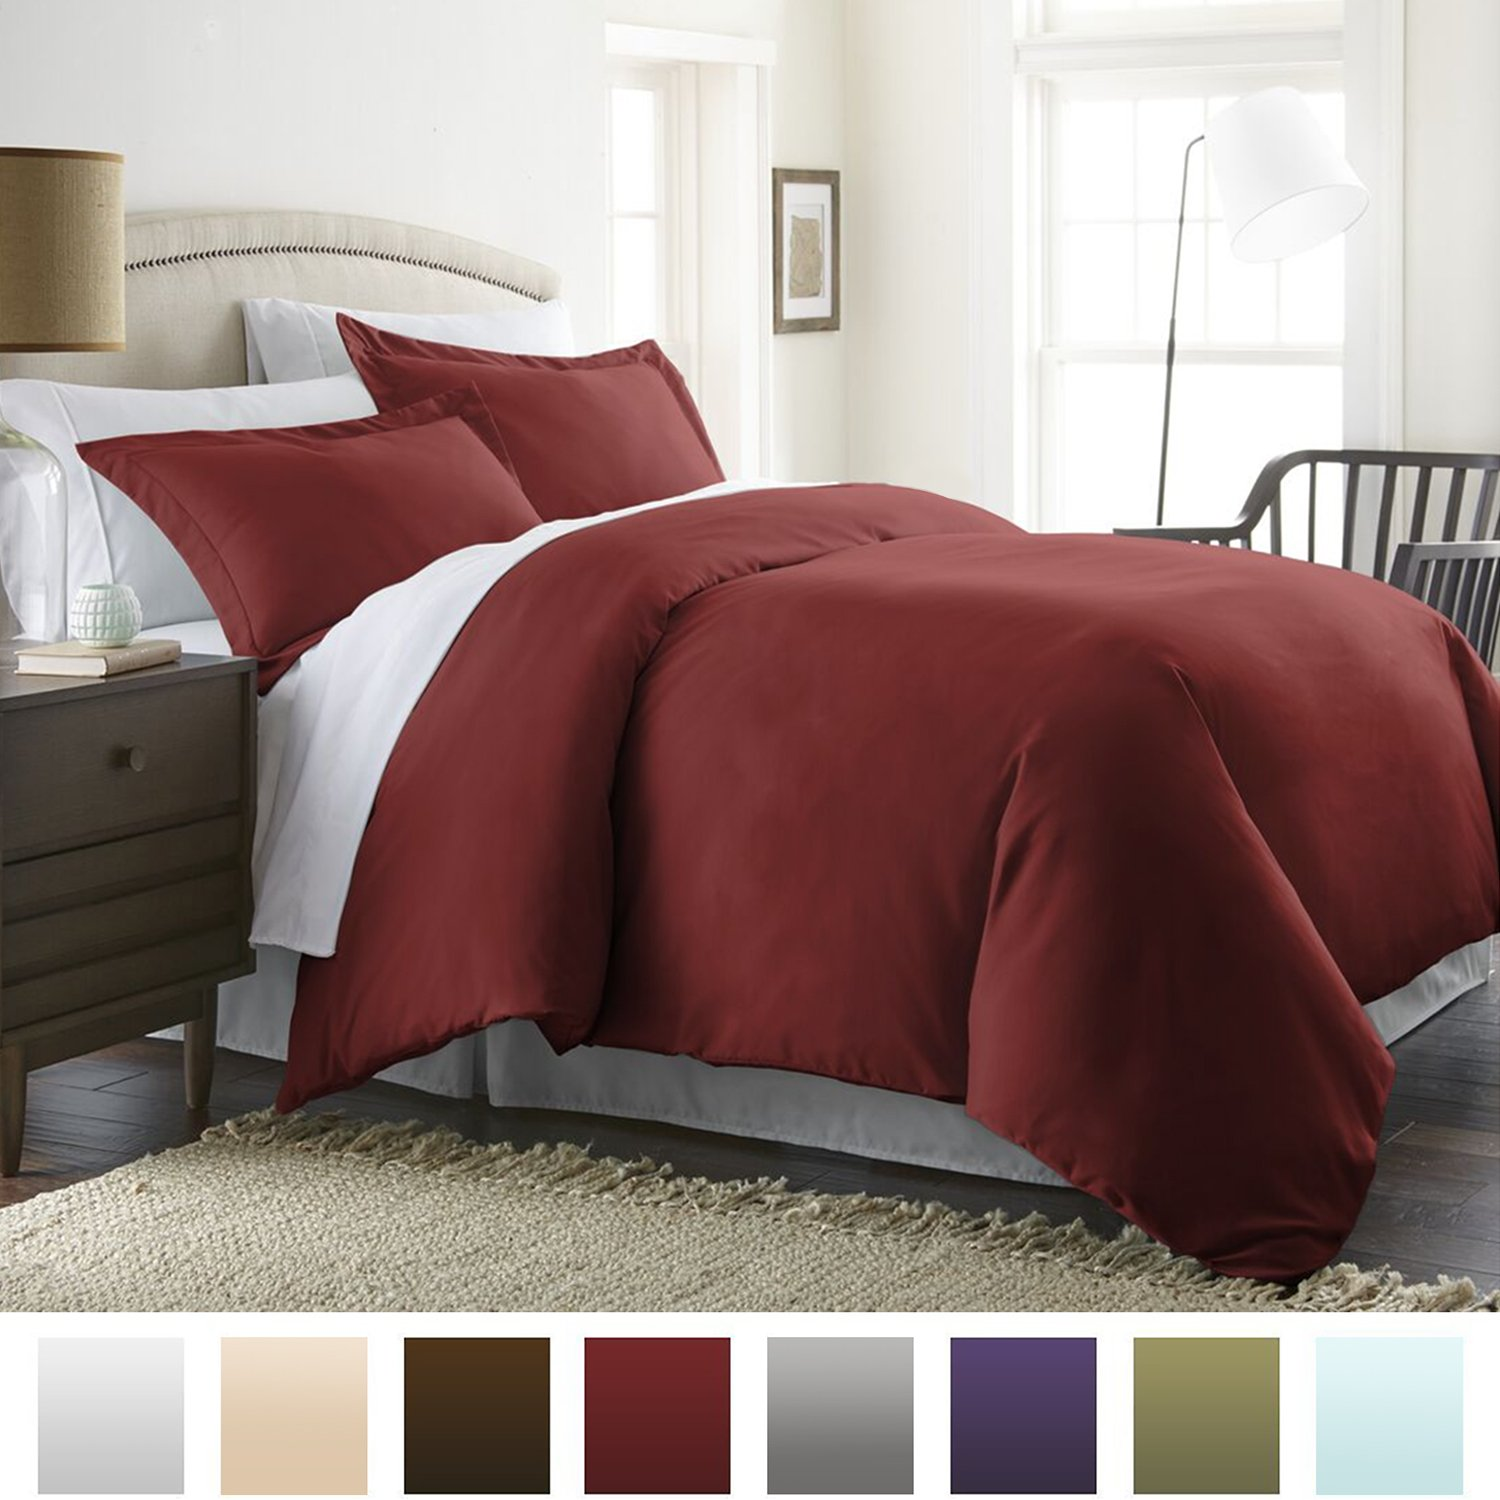 1800 Series Microfiber Duvet Cover Set - Hypoallergenic - Full/Queen, Burgundy